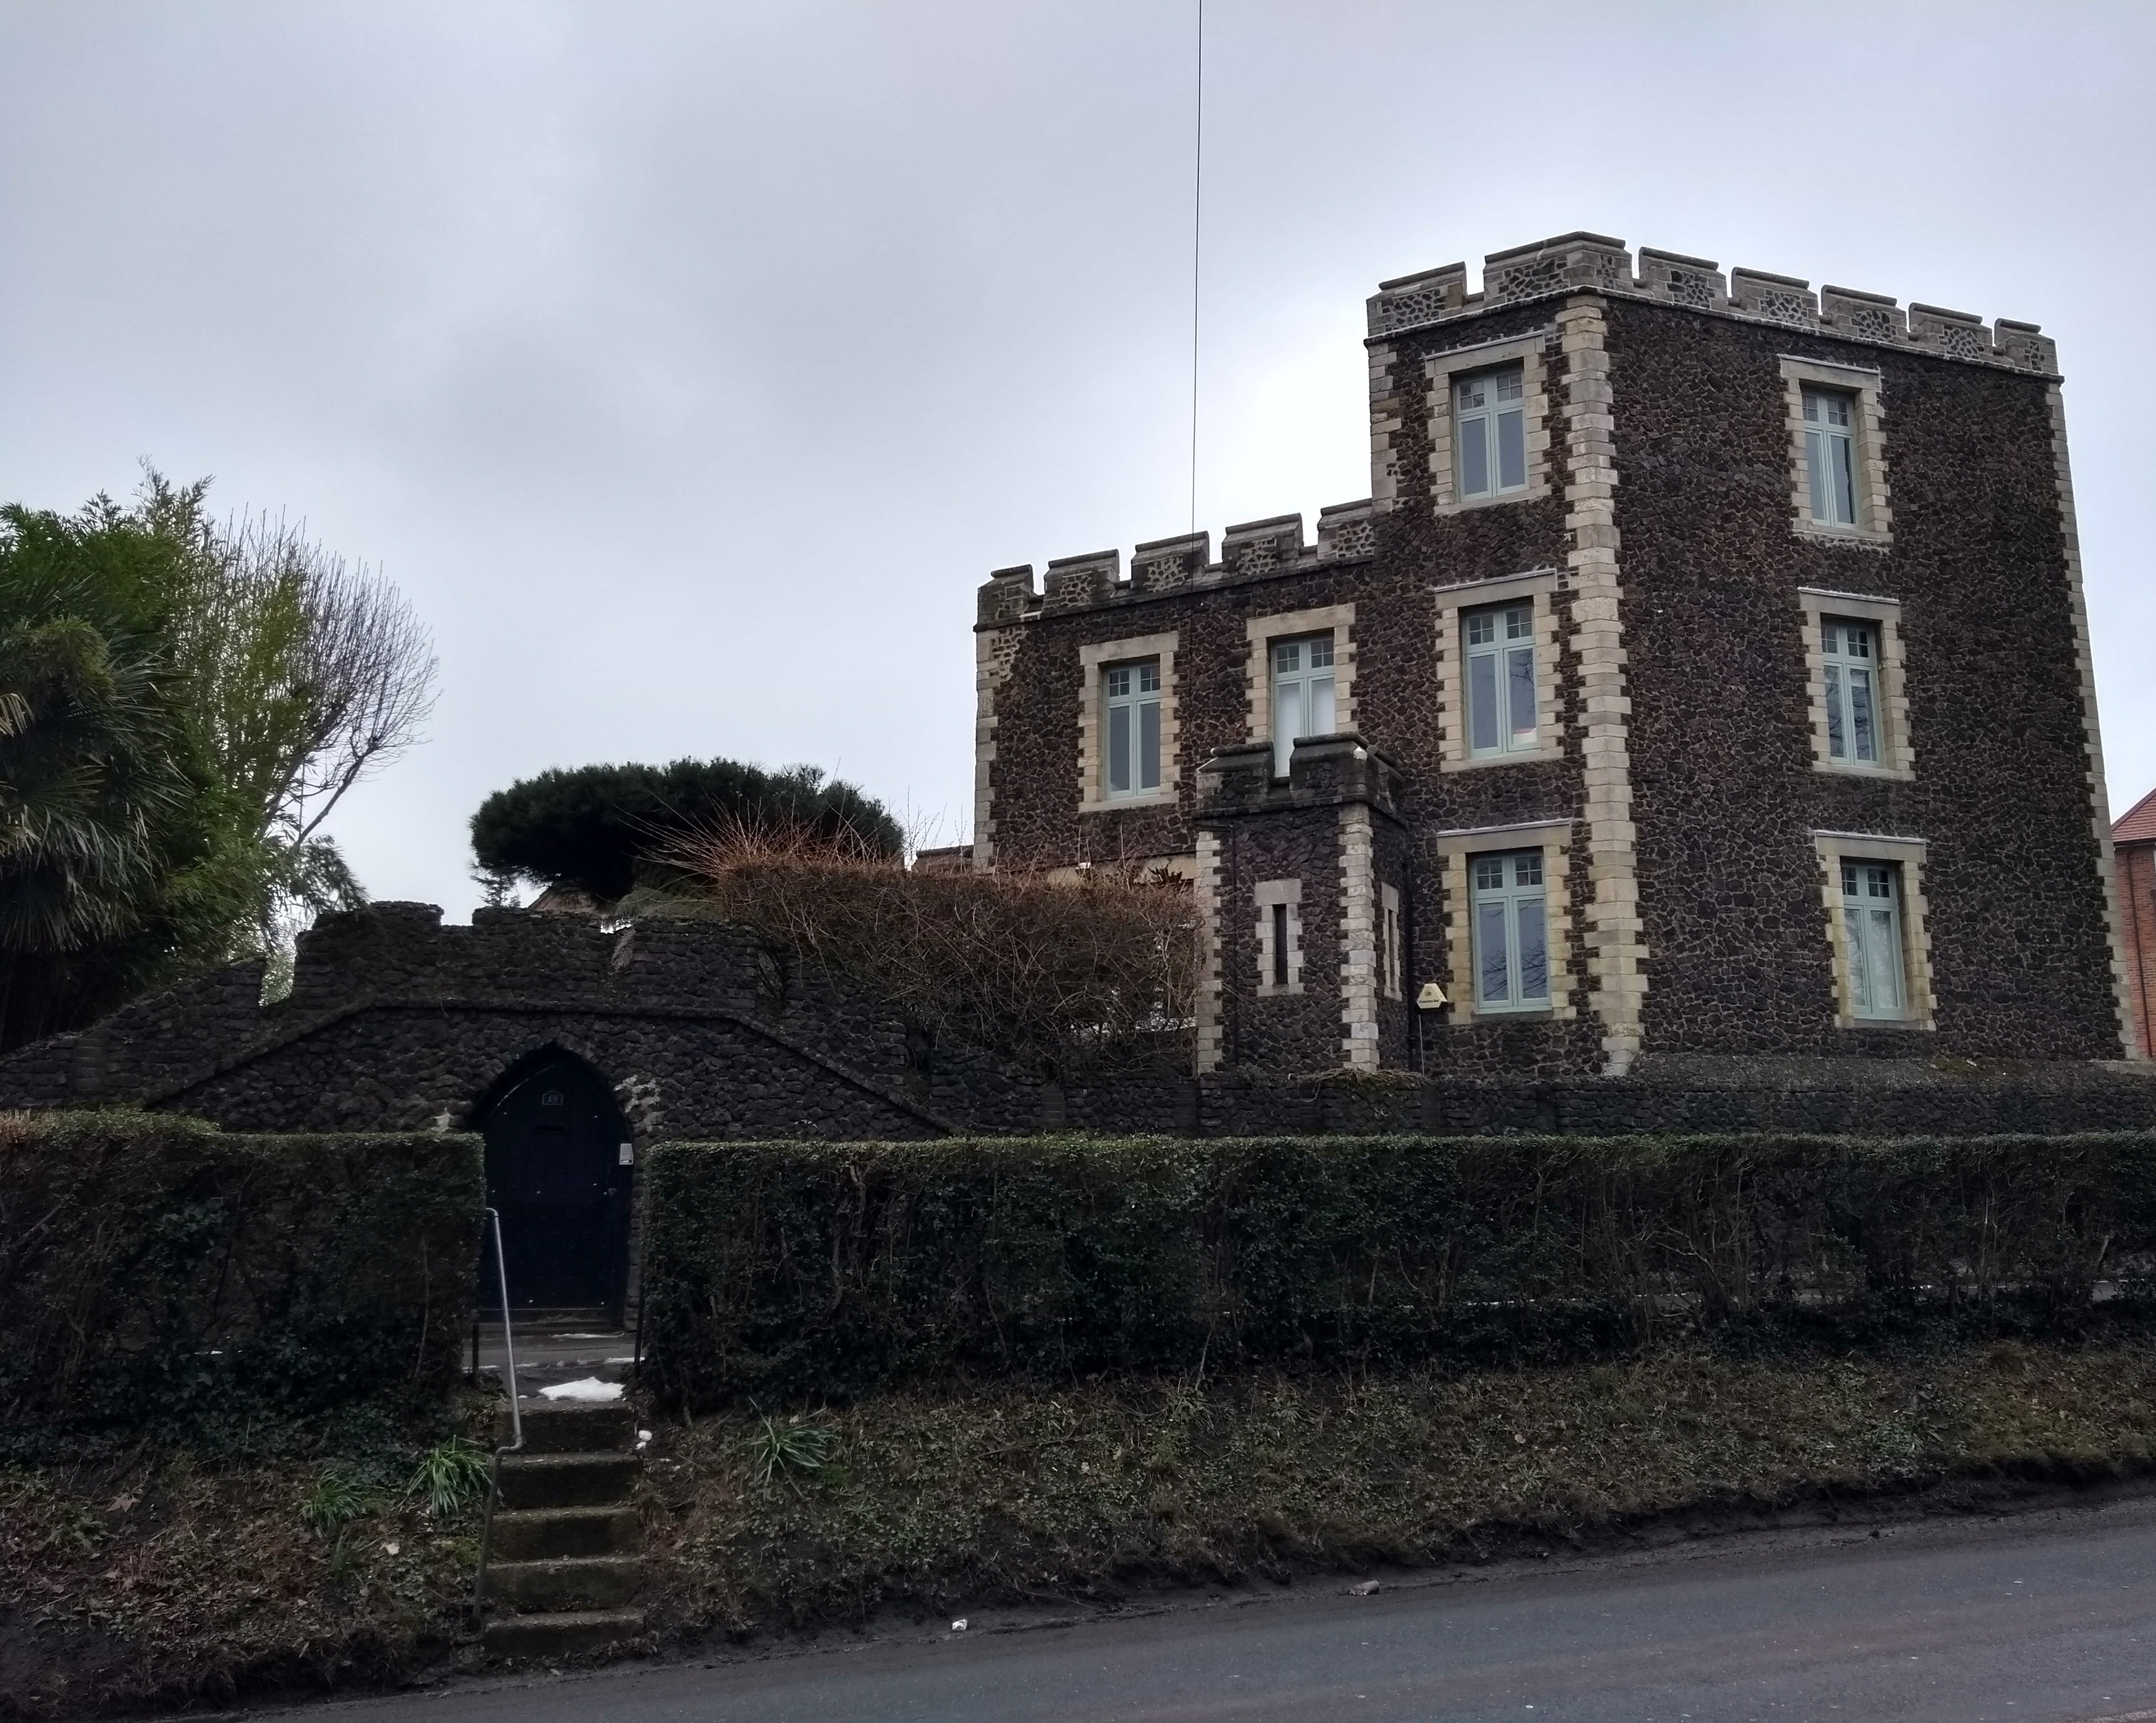 The castle-like building on Castle Hill